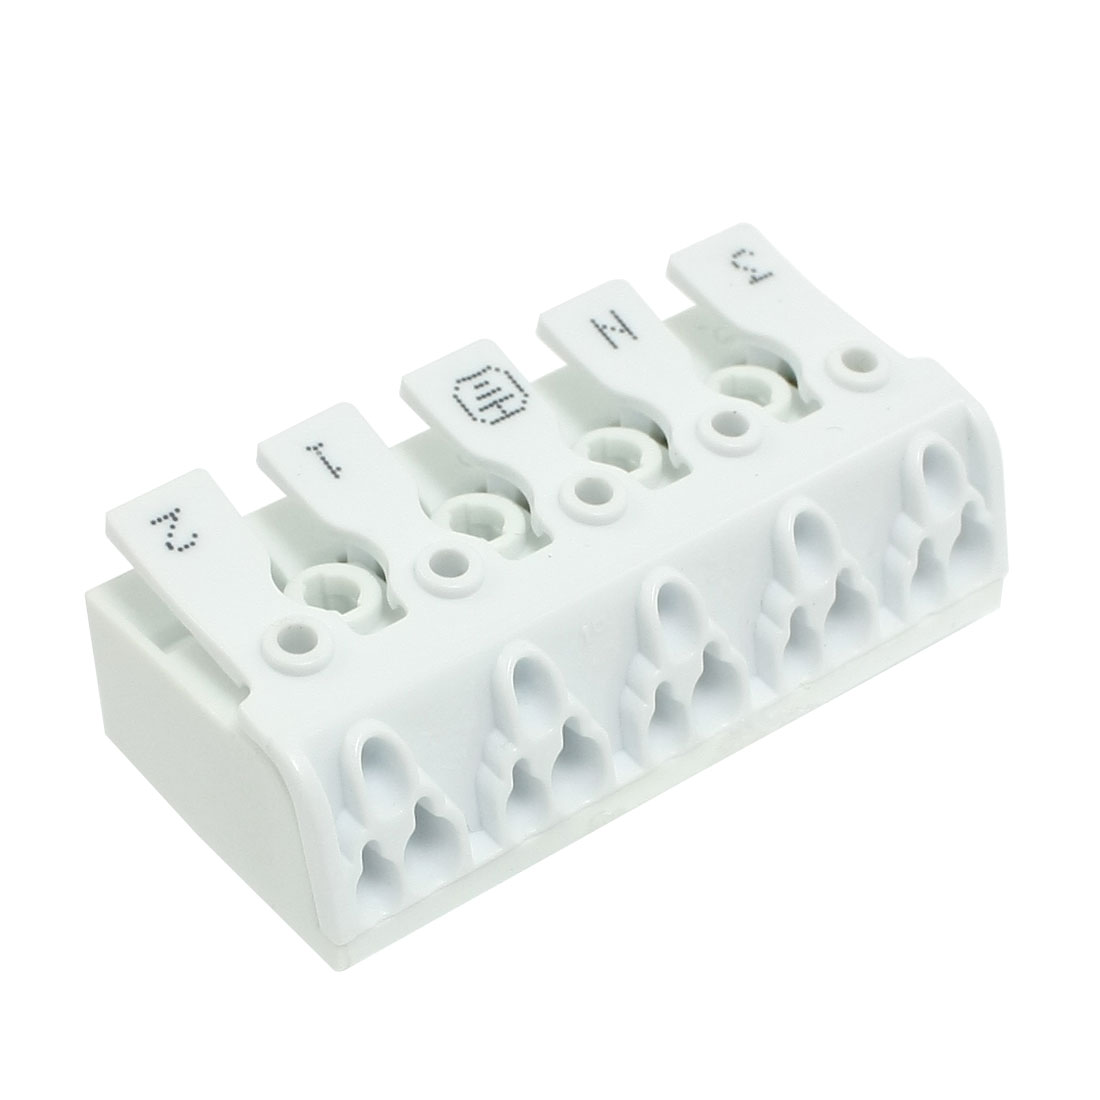 Audio Cable Wire Push in Jack Socket 5 Position Speaker Terminal Block White